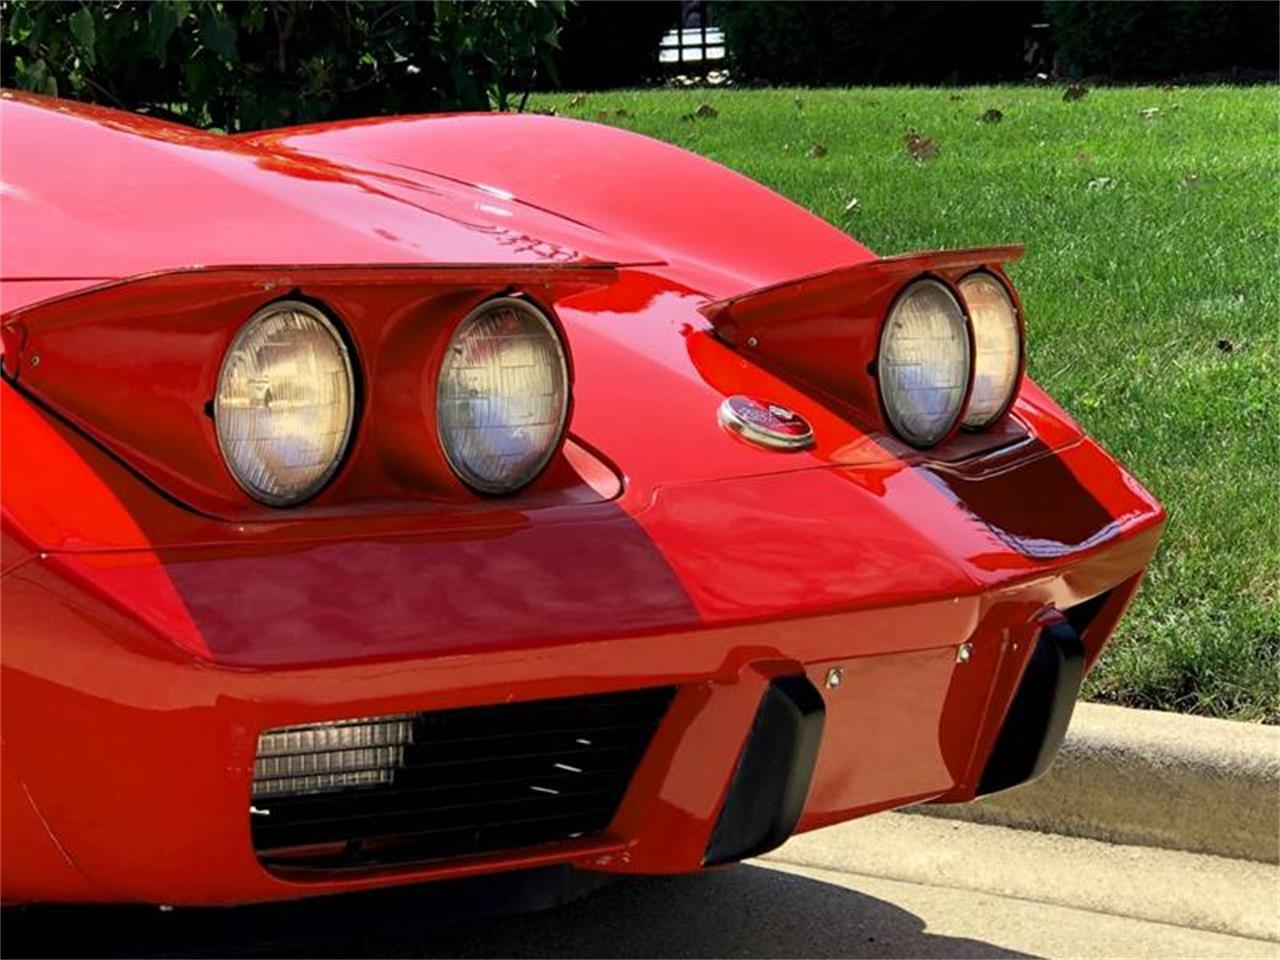 Large Picture of '75 Chevrolet Corvette - $24,990.00 Offered by Corvette Mike Midwest - QXHK